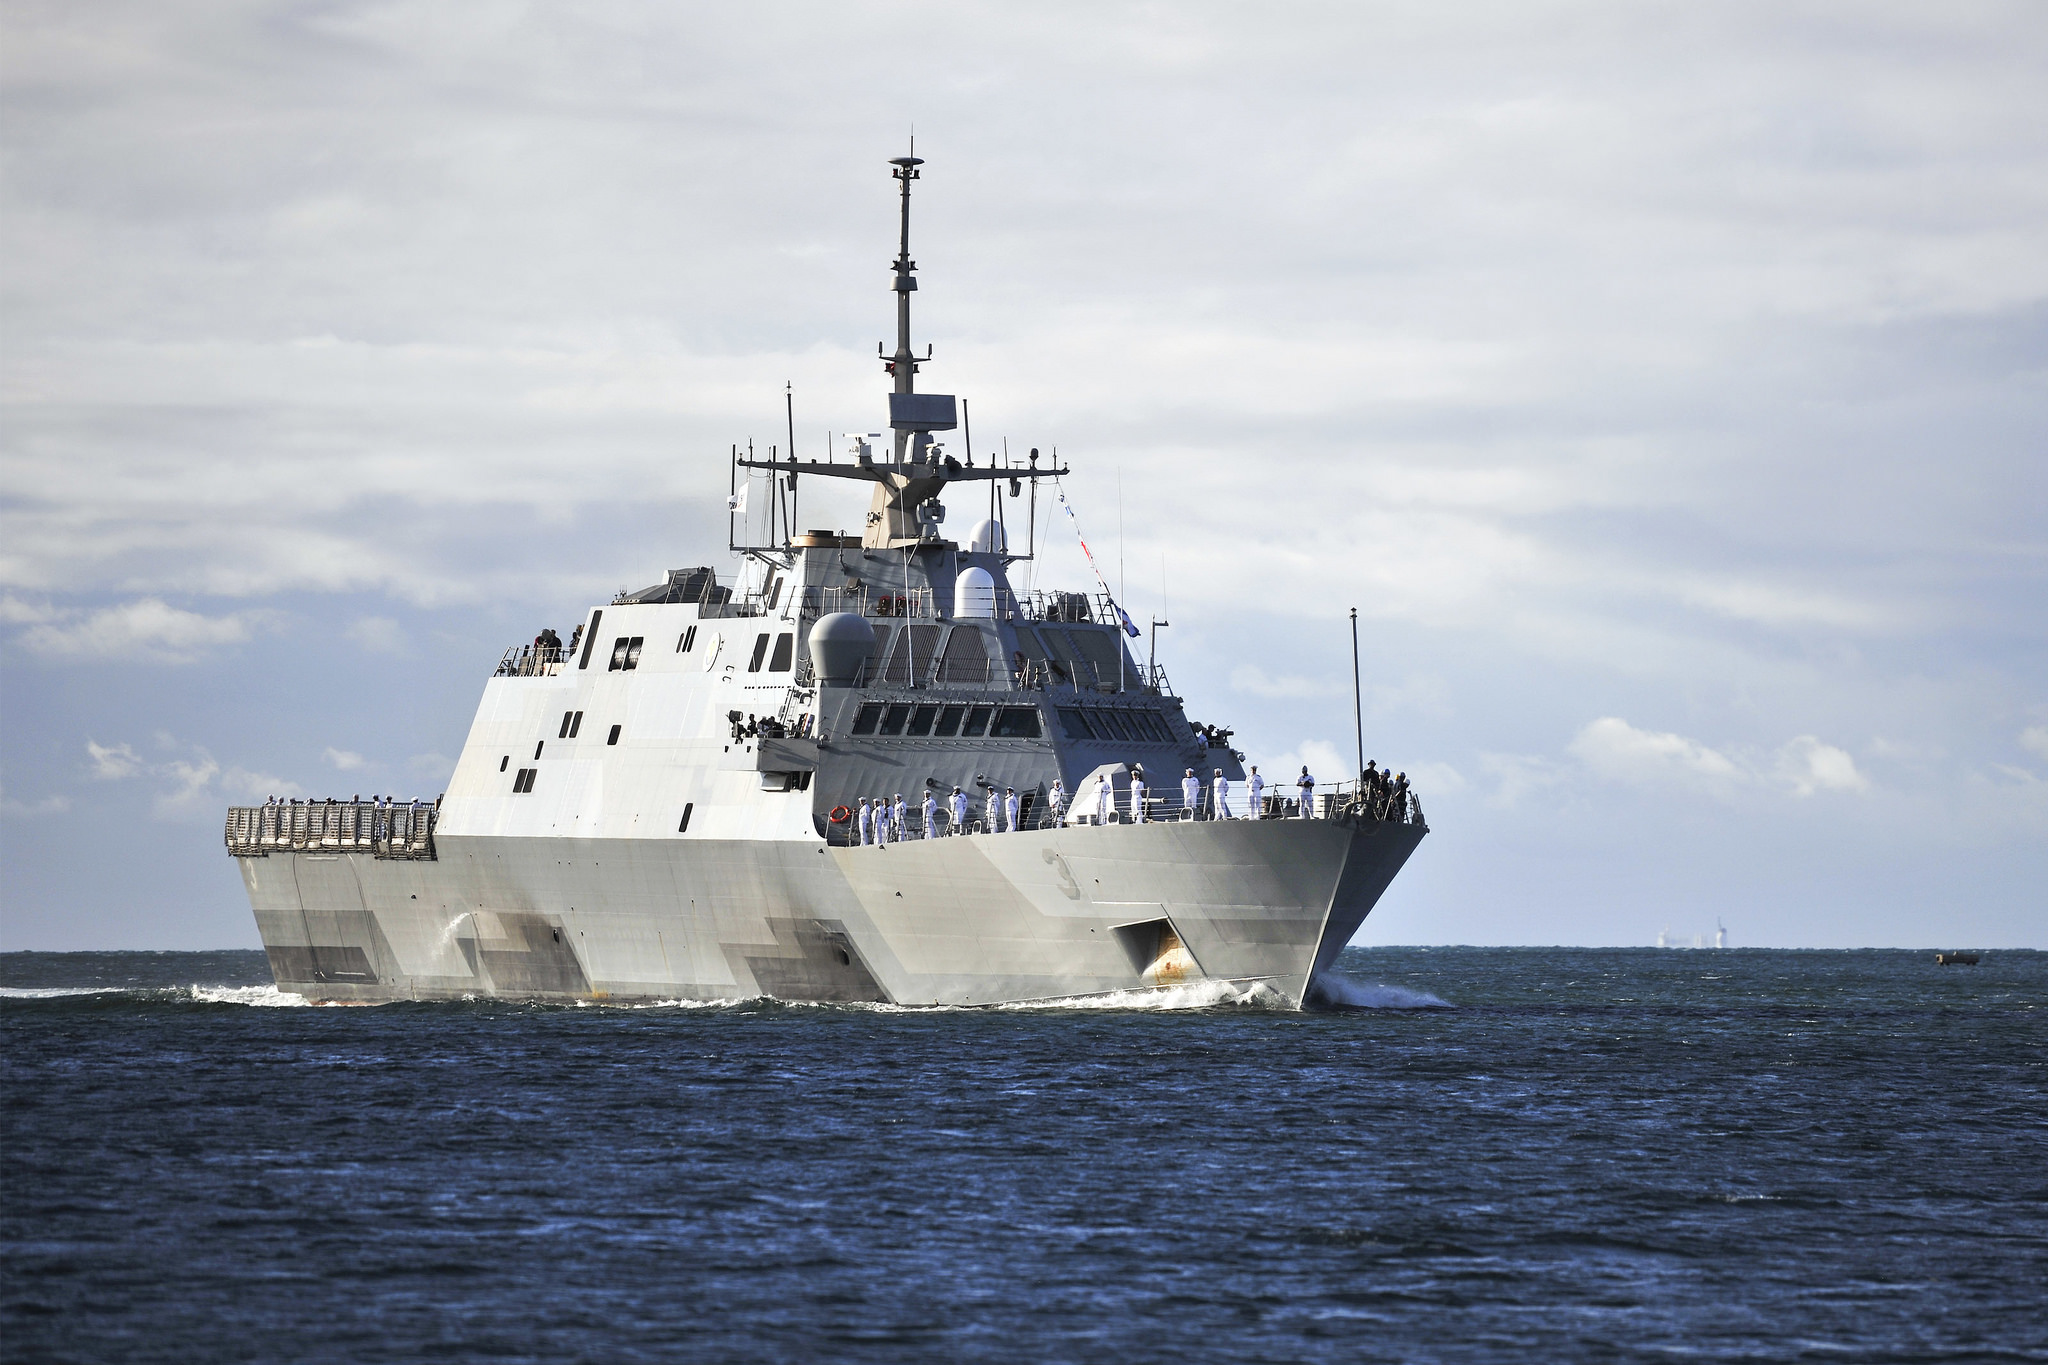 USS FORT WORTH LCS-3 im November 2014 vor Hawaii Bild: U.S. Navy